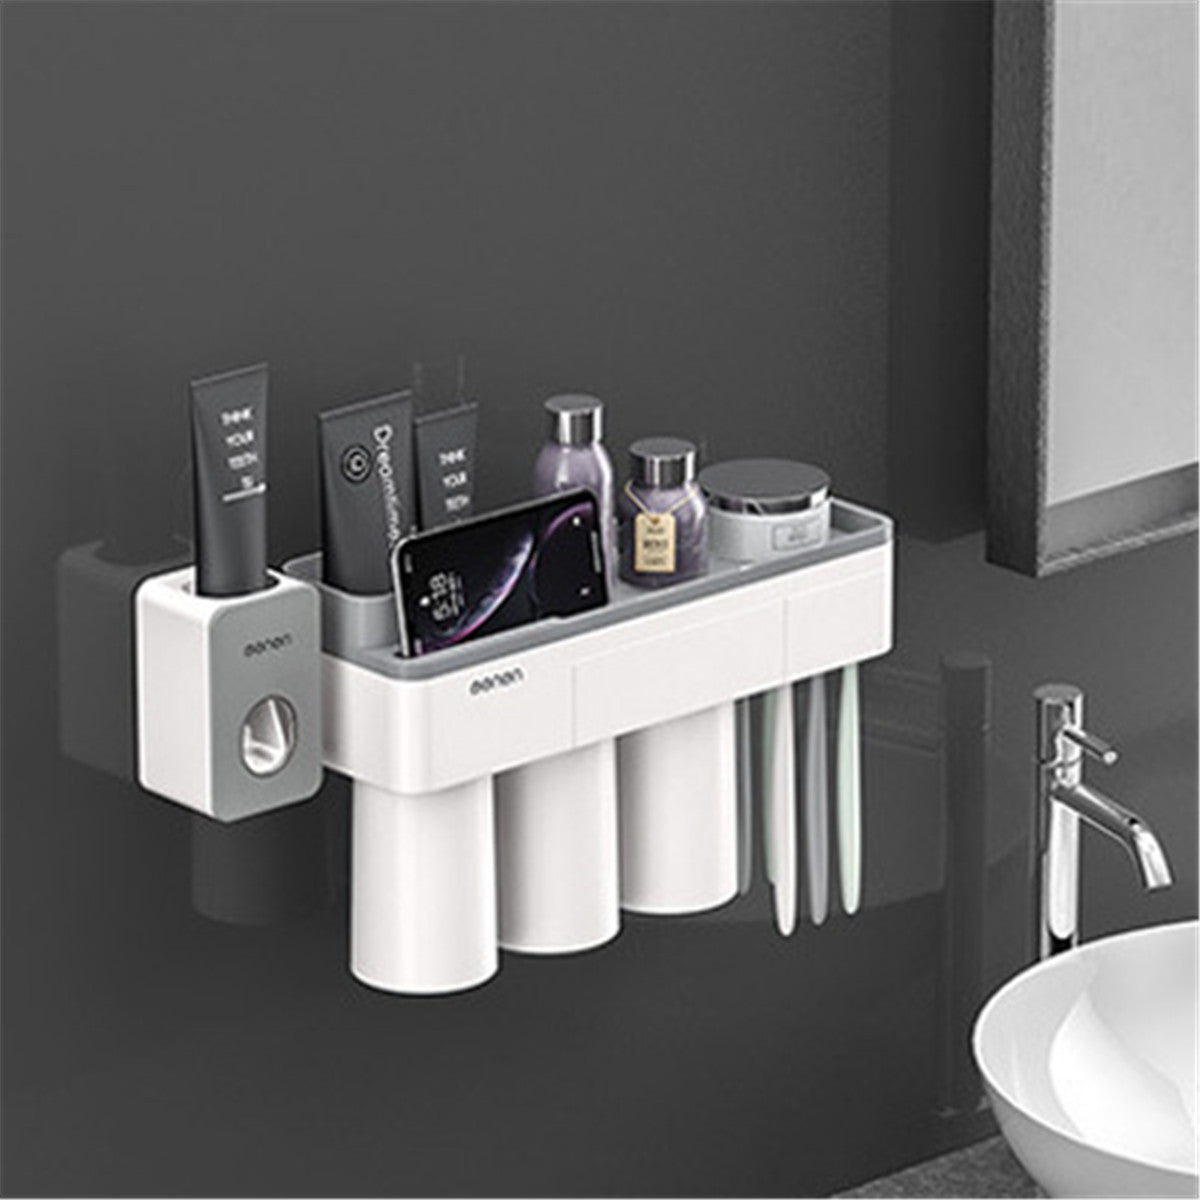 cozyrex,Mutifunctional Magnetic Toothbrush Holder,CozyRex,